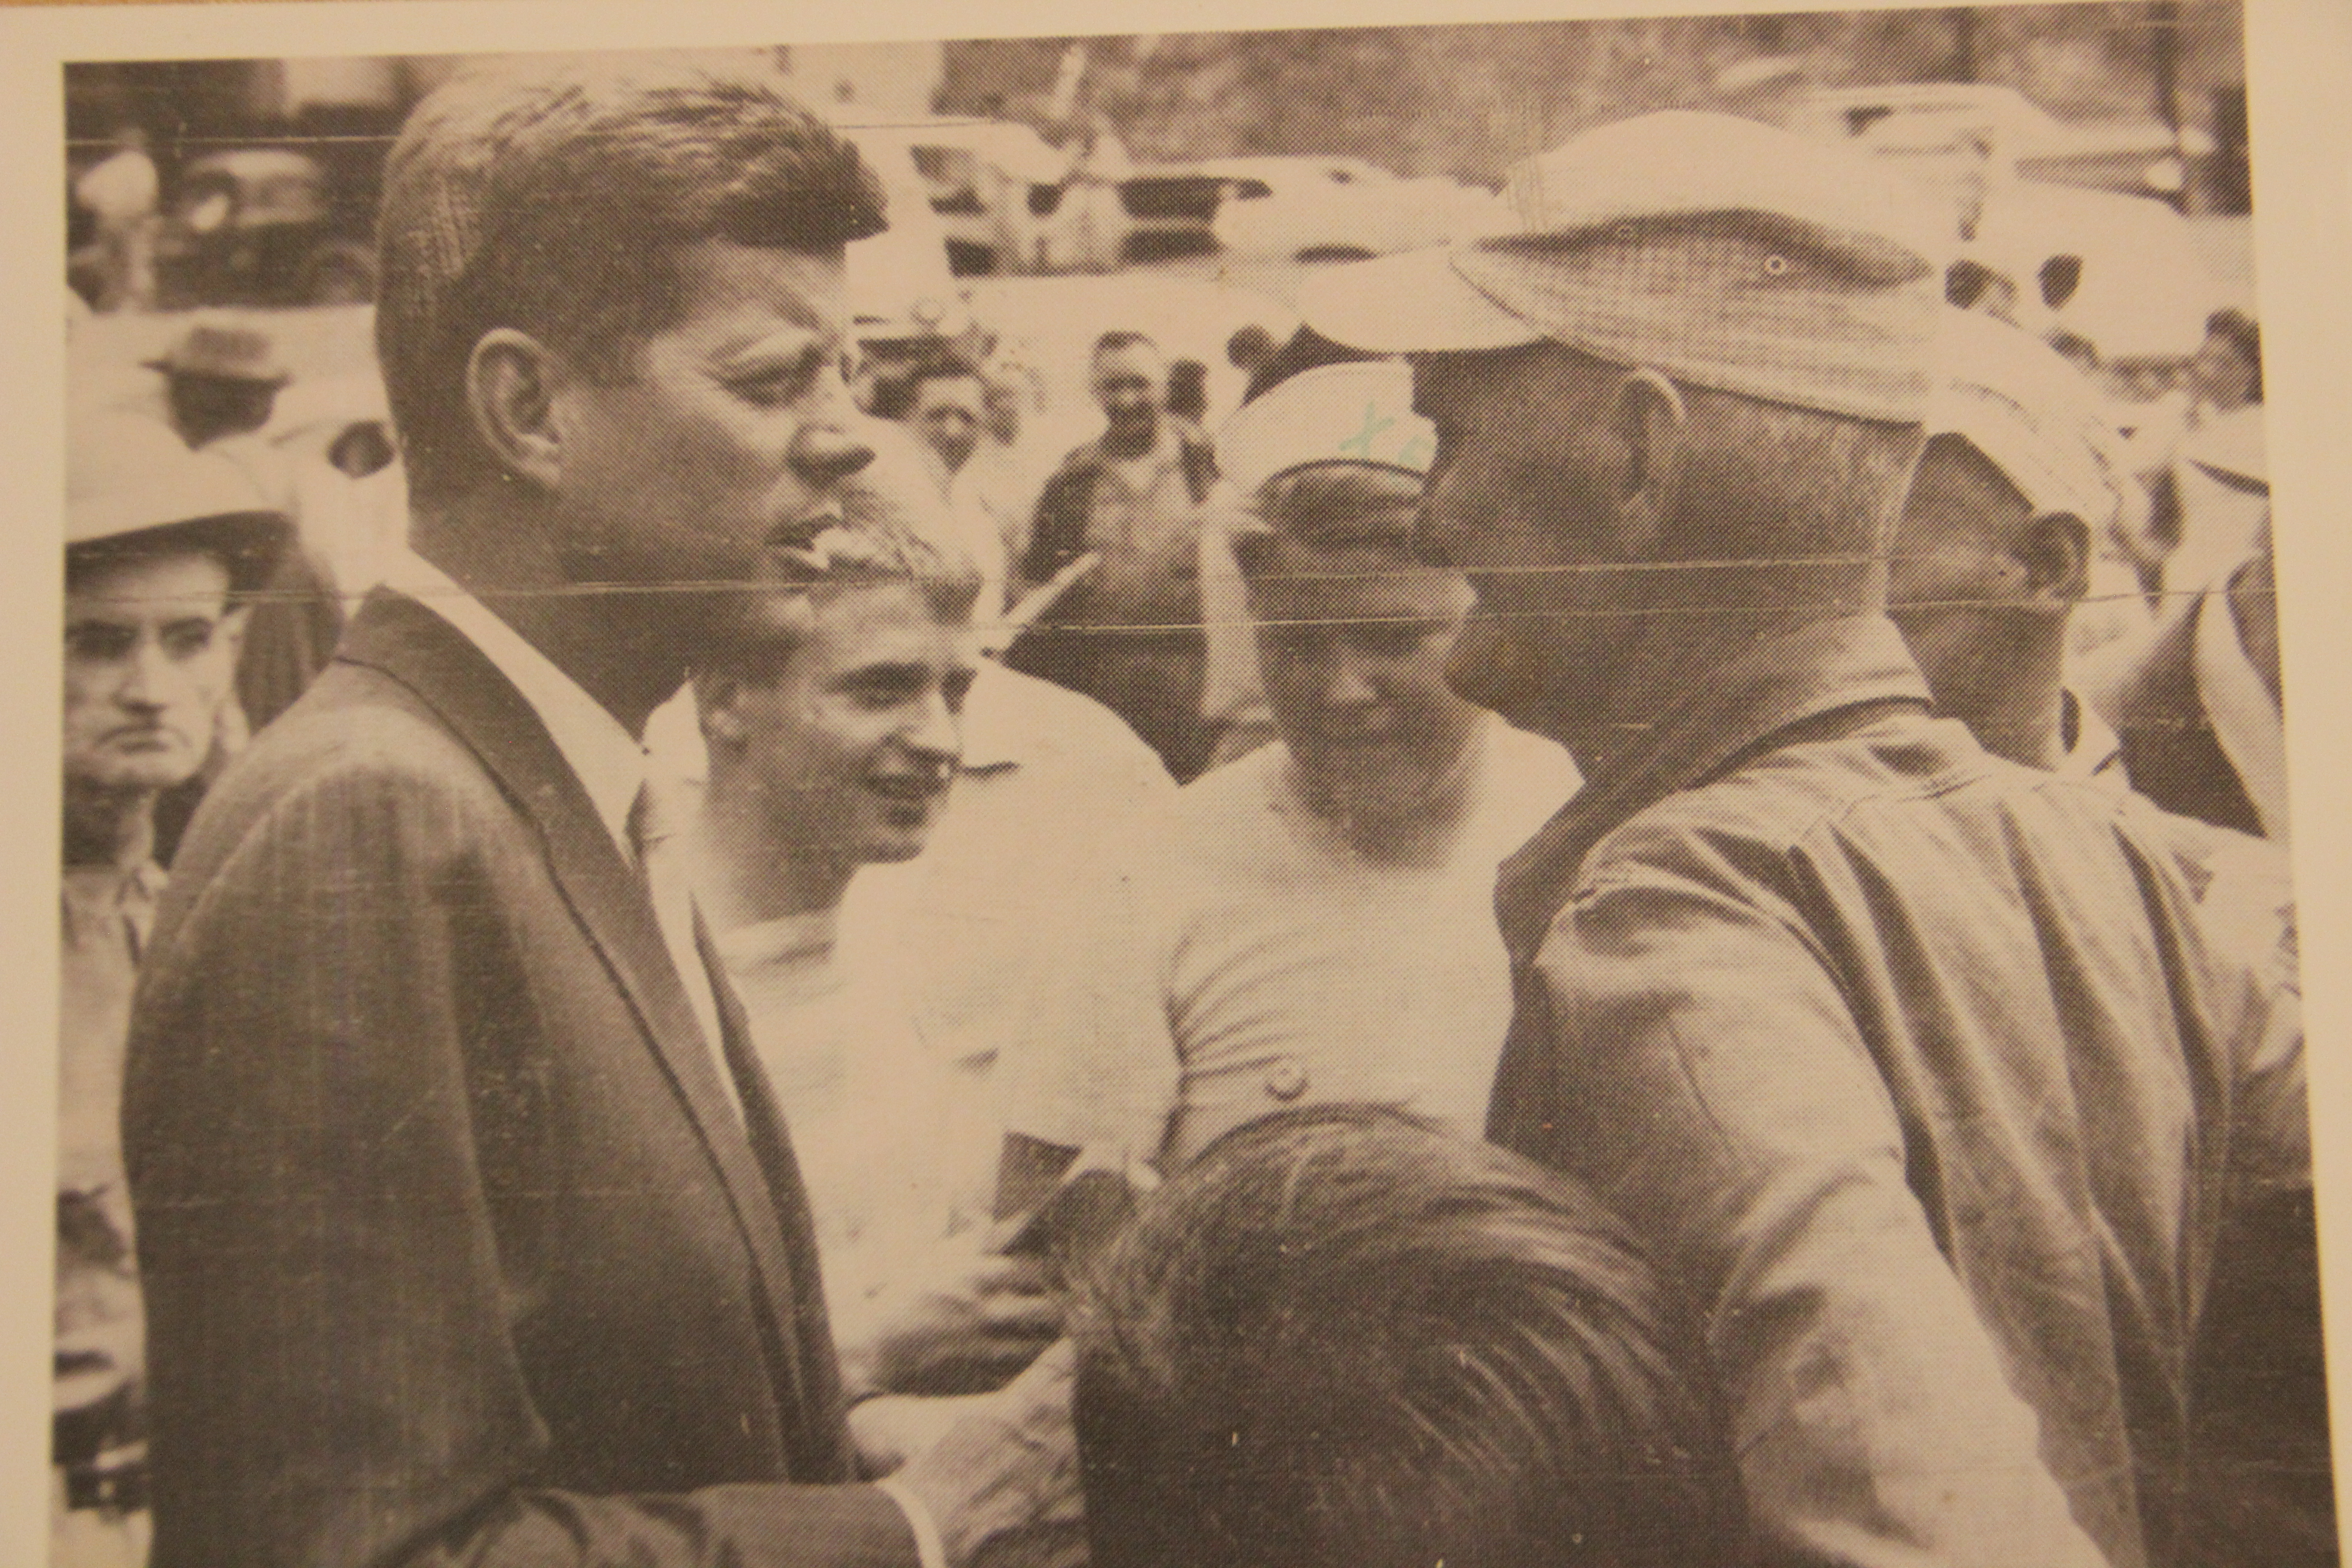 John F. Kennedy campaigning in Mingo County